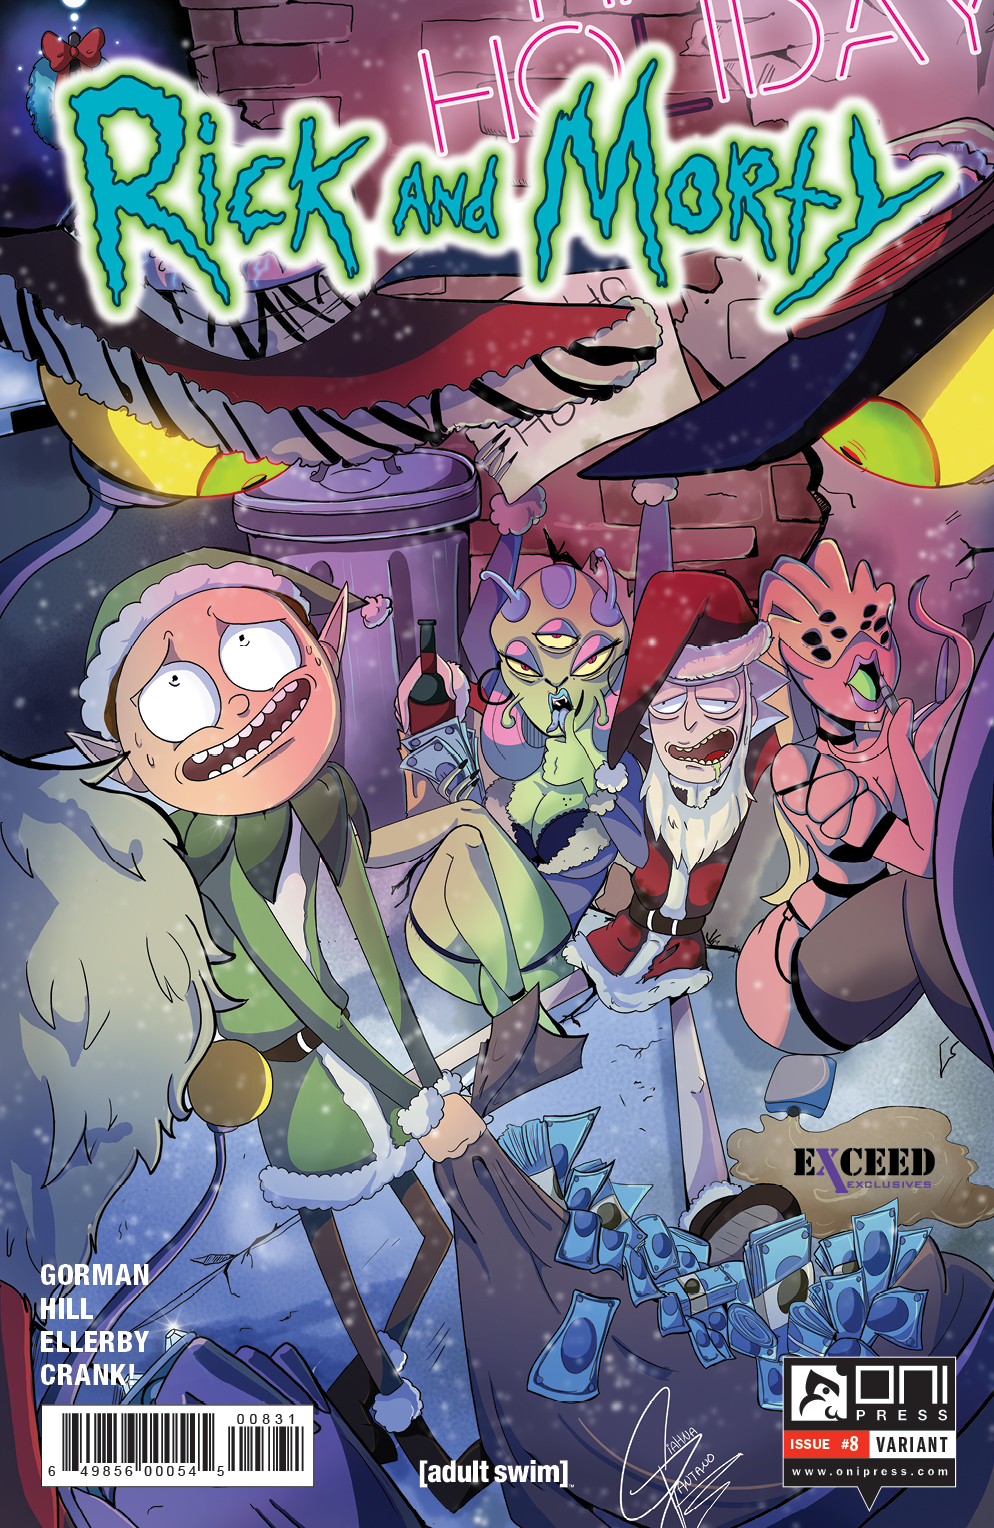 Rick And Morty Christmas.Rick And Morty Comic Christmas Special Preview Rick And